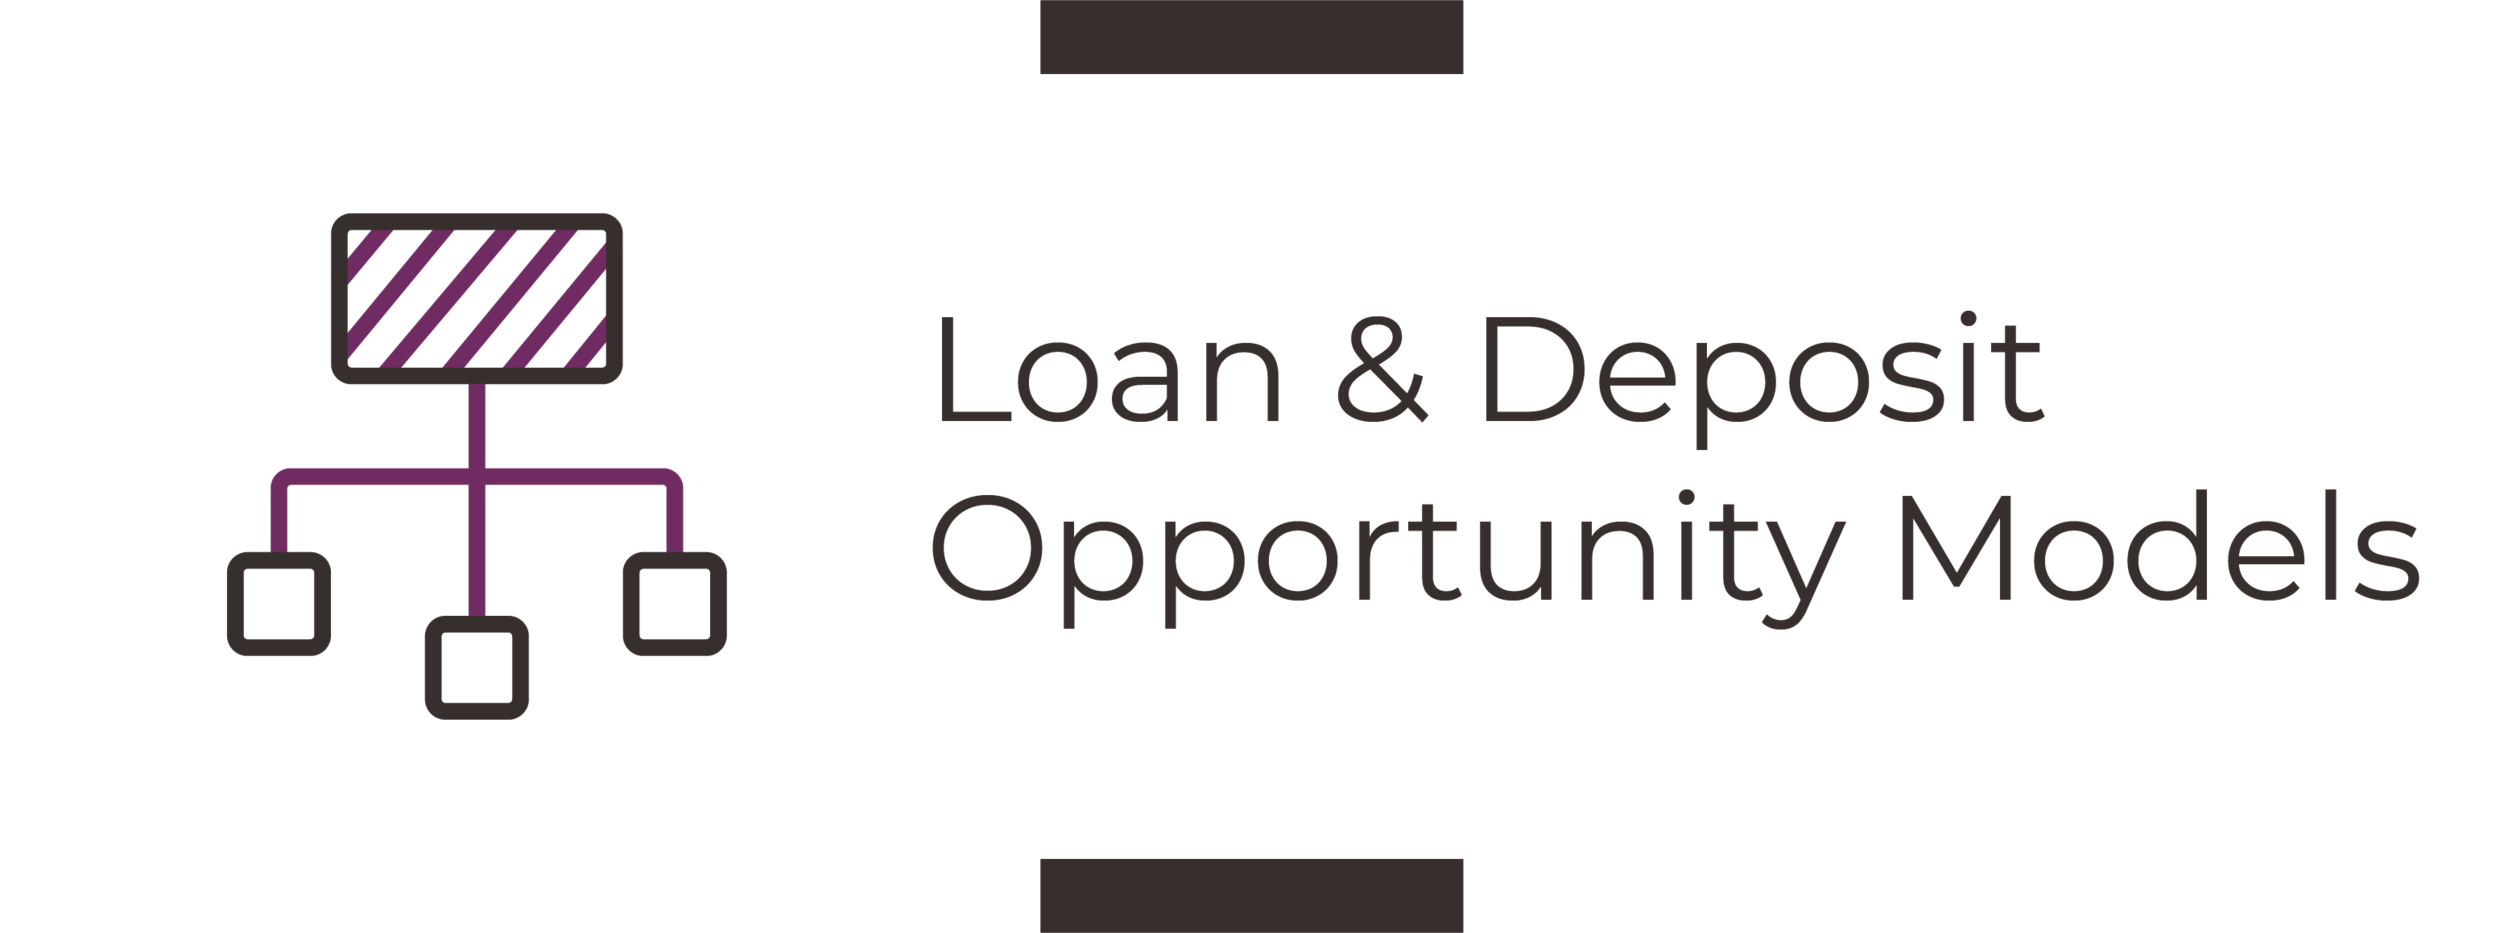 Loan & Deposit Opportunity Models